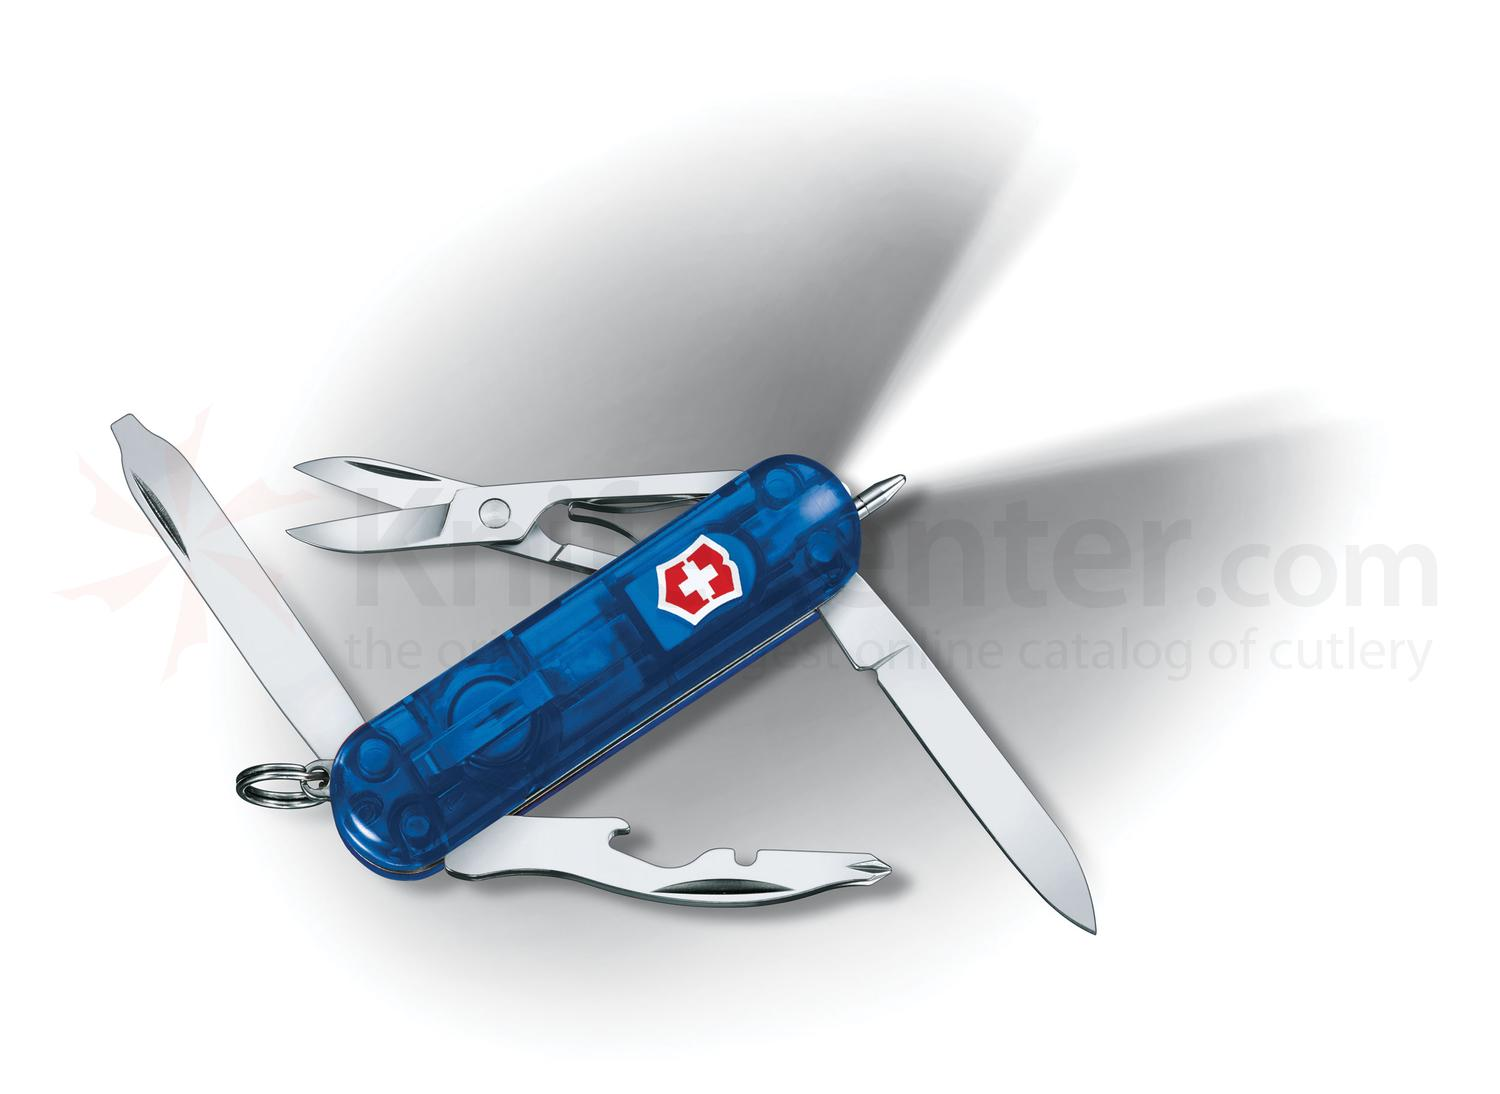 Victorinox Swiss Army Midnite Manager Multi-Tool with LED, Transparent Blue, 2.28 inch Closed